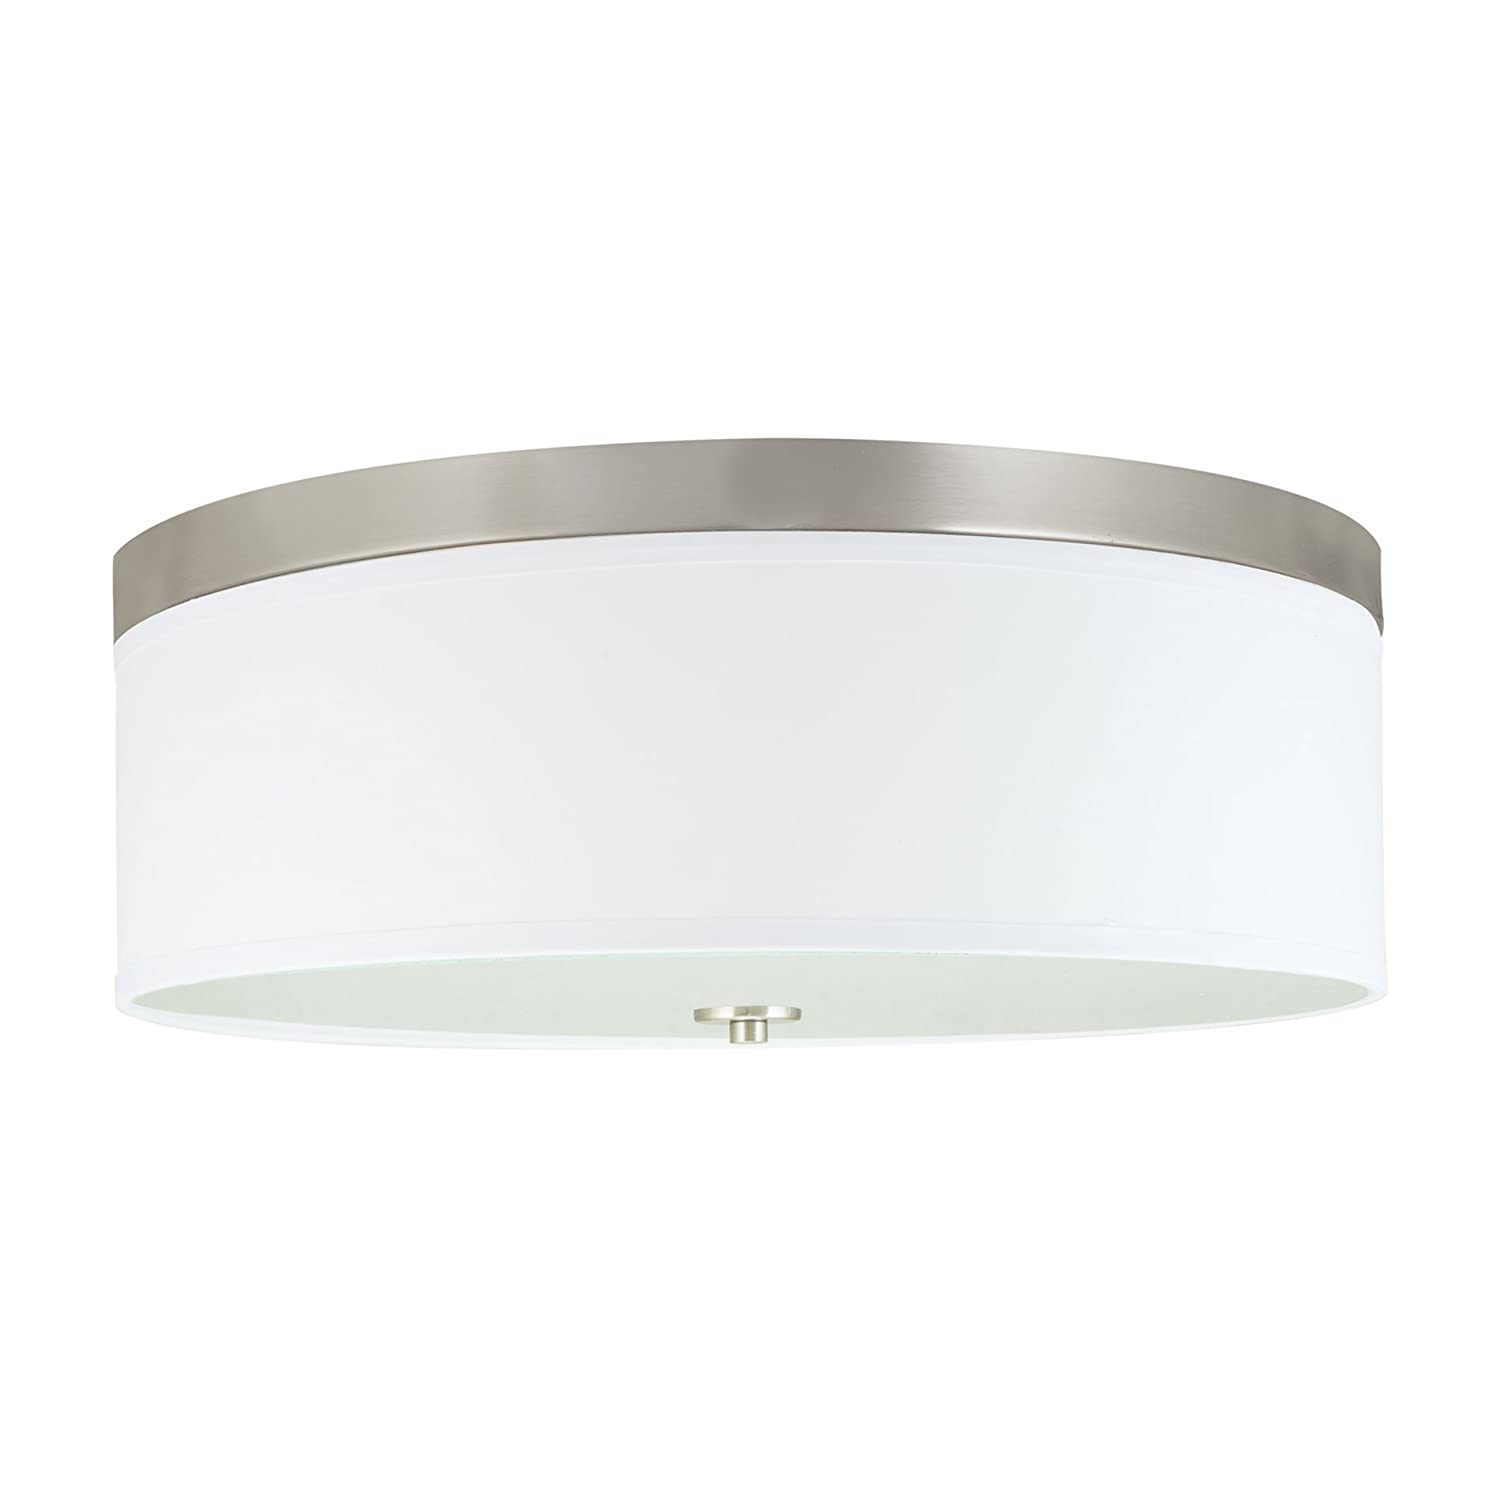 "Kira Home Walker 15"" Modern 3-Light Flush Mount Ceiling Light + White Shade, Brushed Nickel Finish"